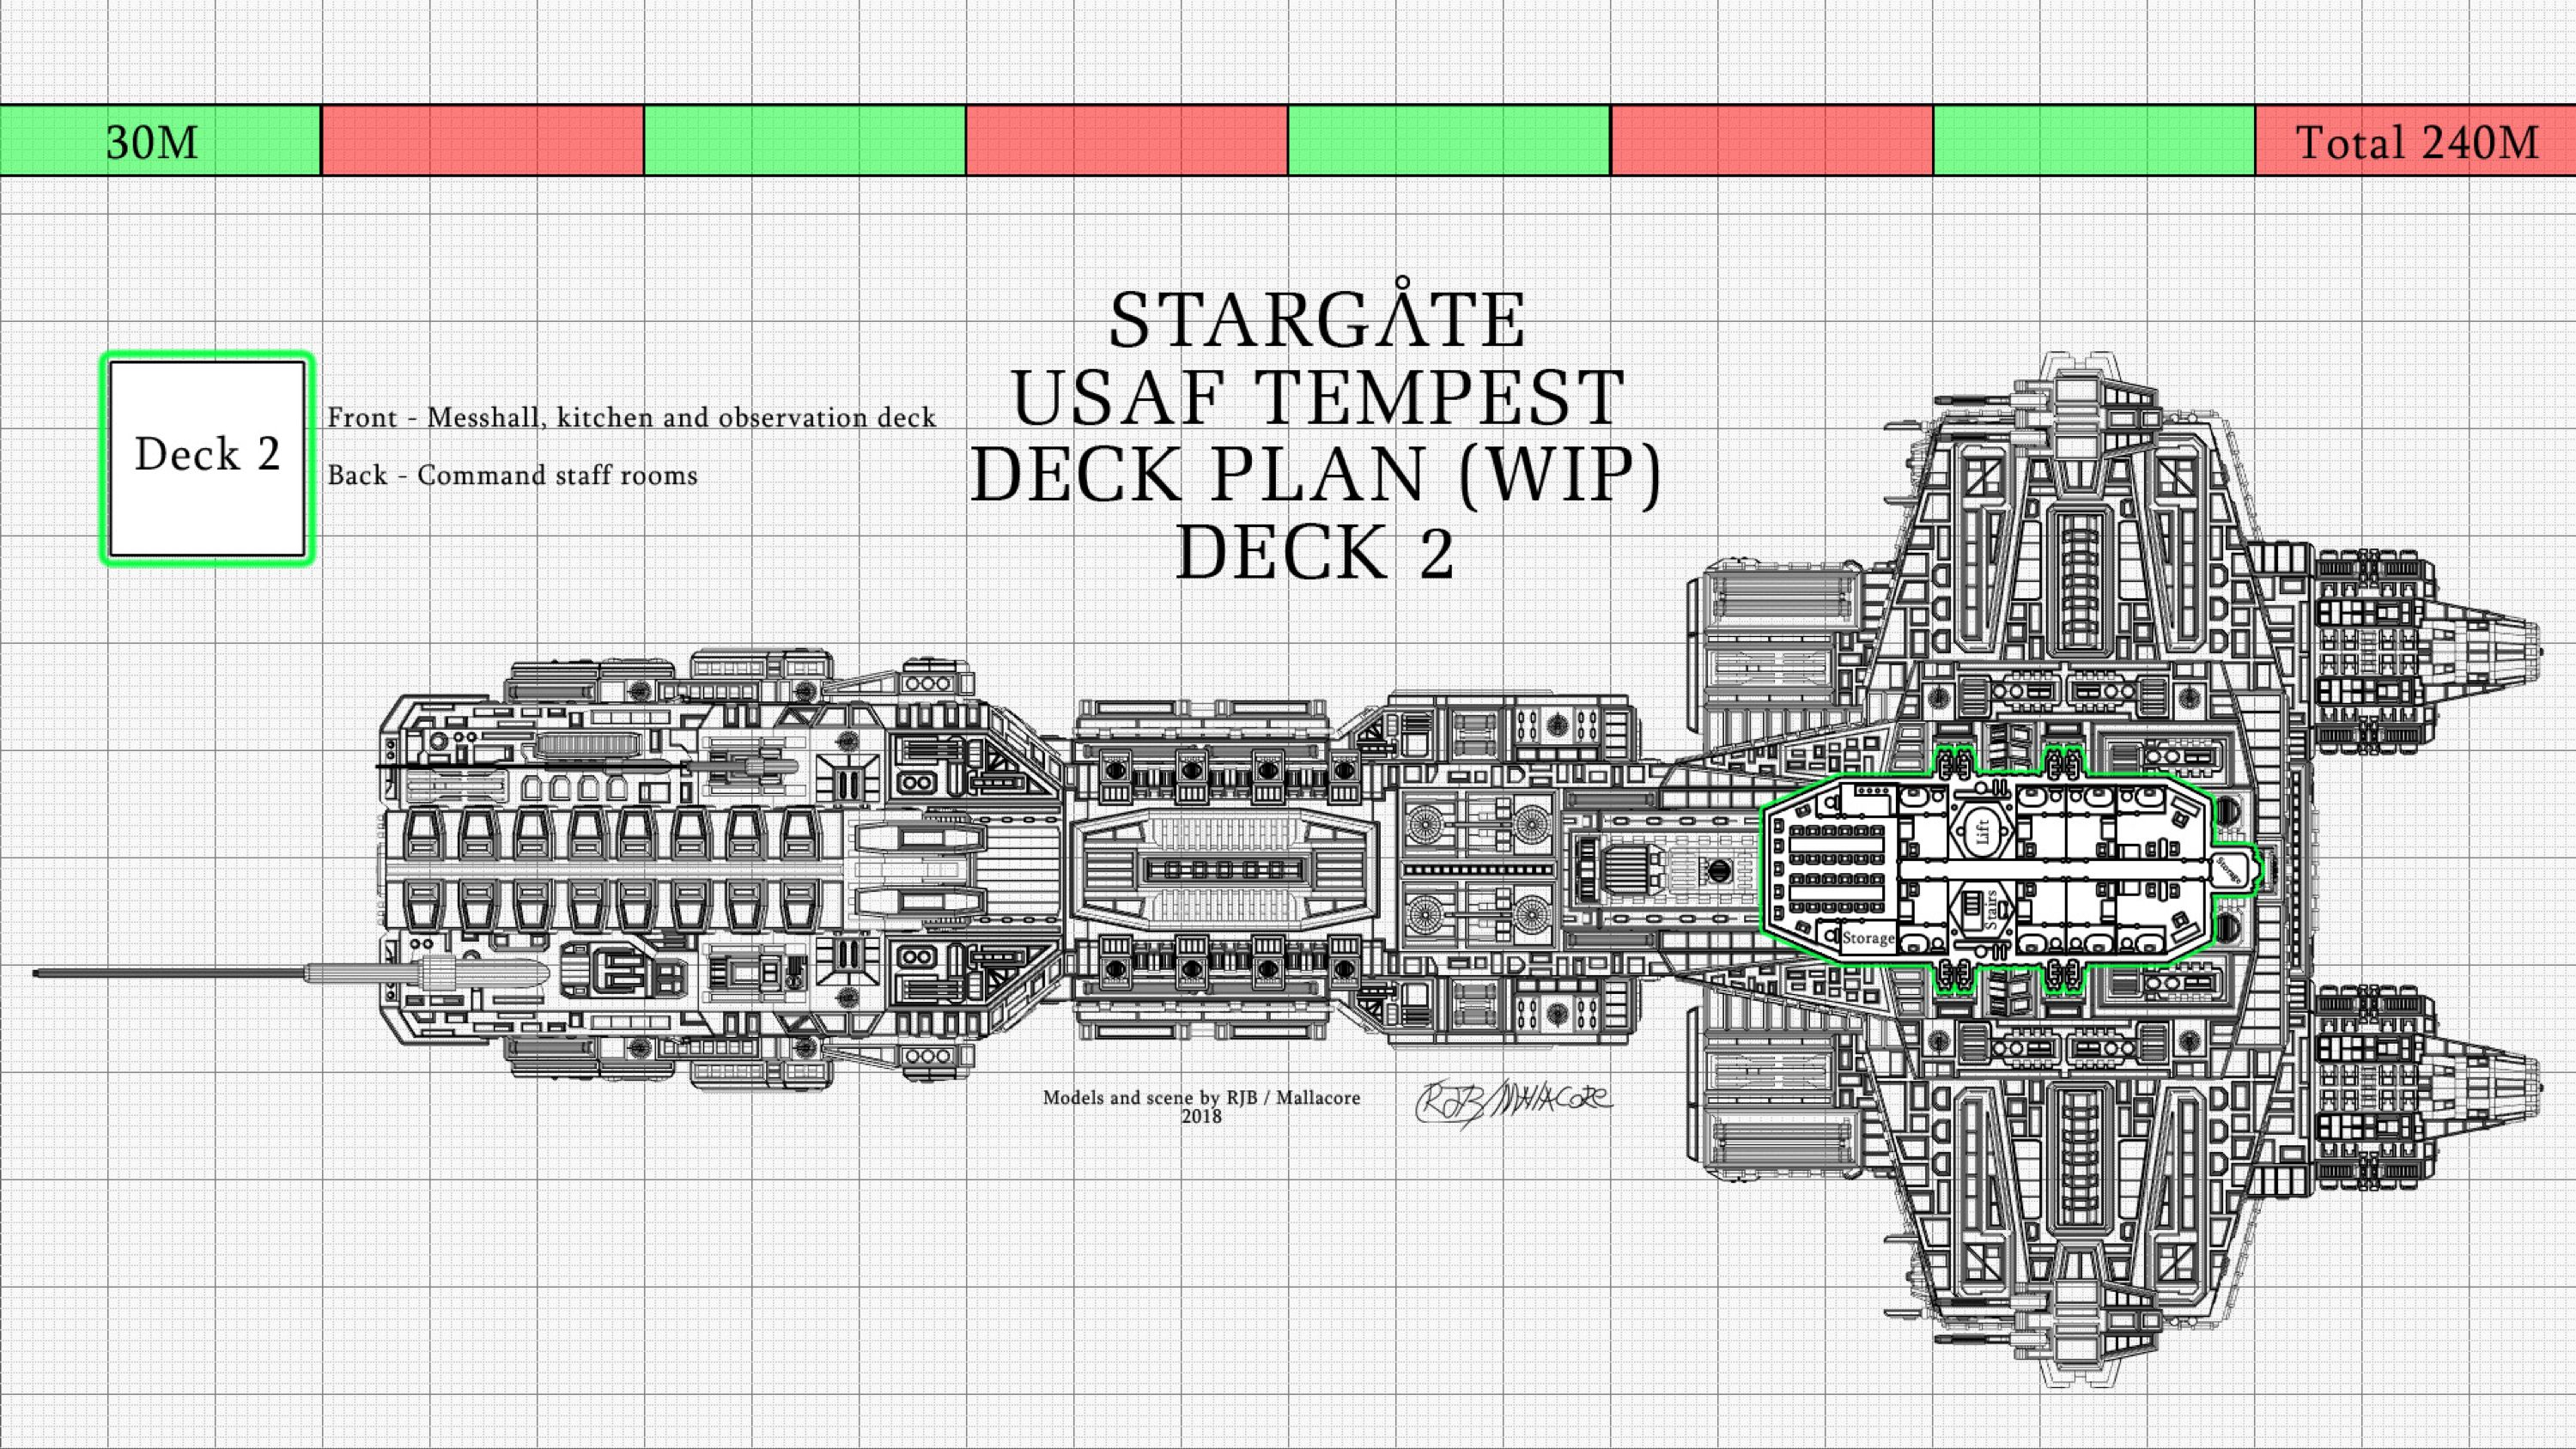 Stargate usaf tempest deck plan wip 2 by mallacore on deviantart